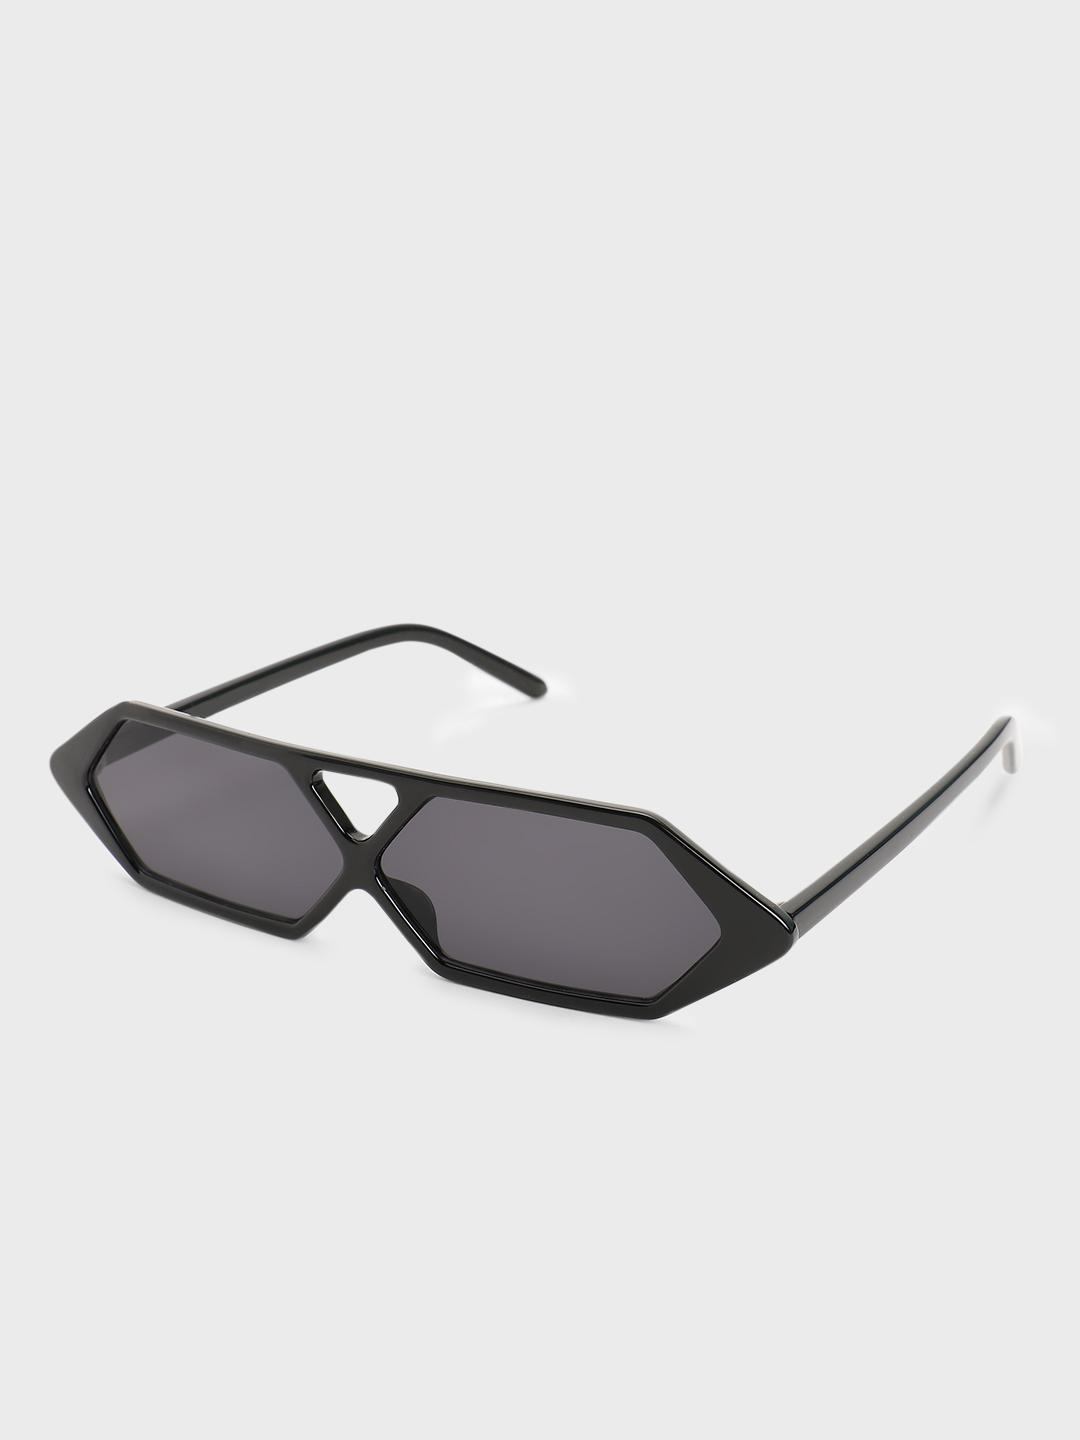 Pataaka Black Hexagon Frame Retro Sunglasses 1